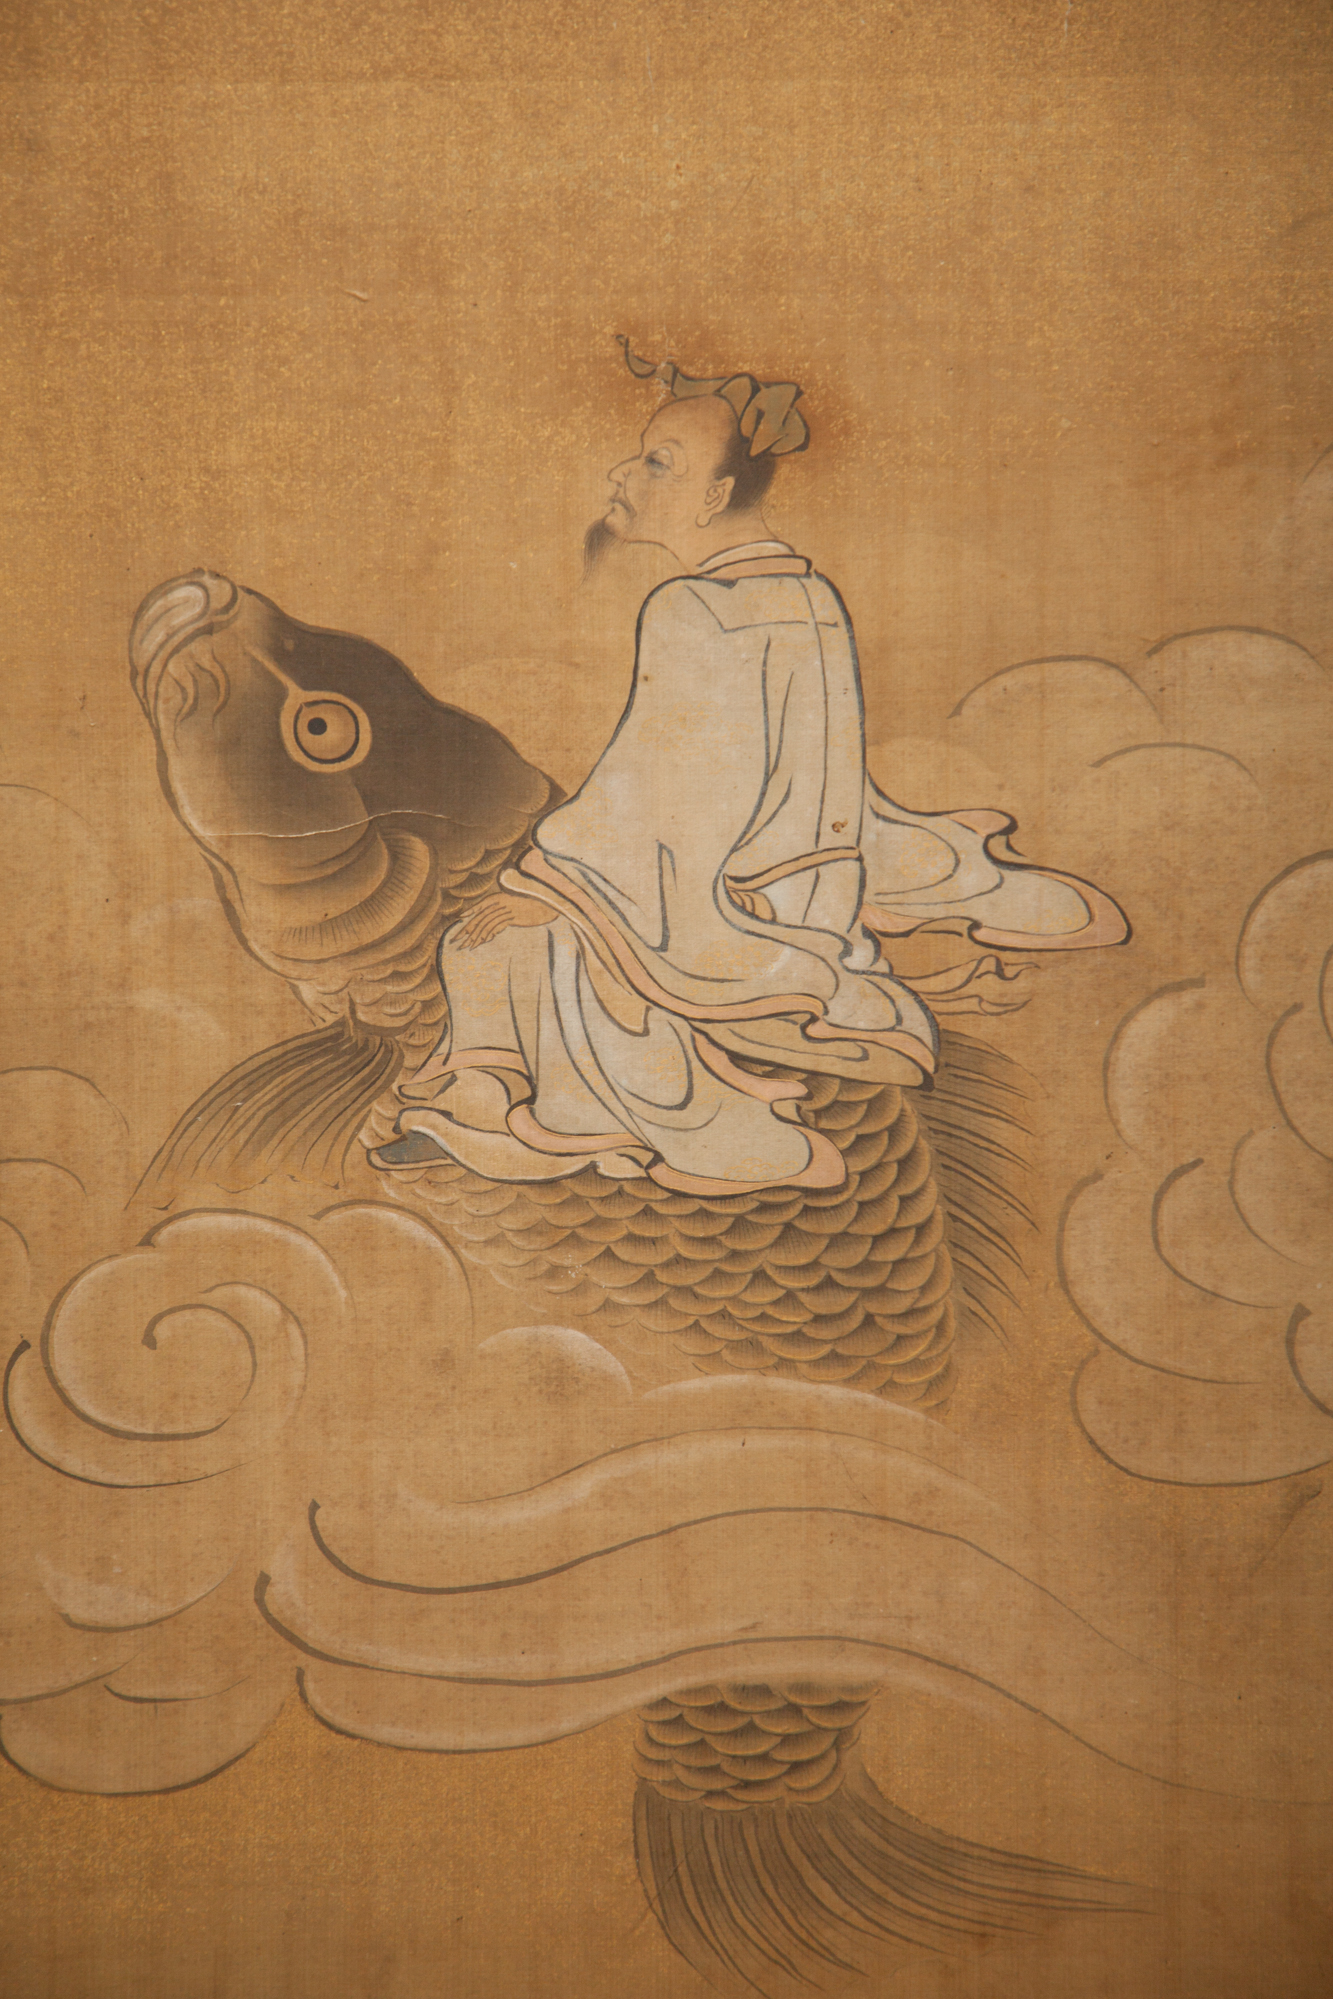 Japanese Two Panel Screen: Chinese Literary Figures in Seascape